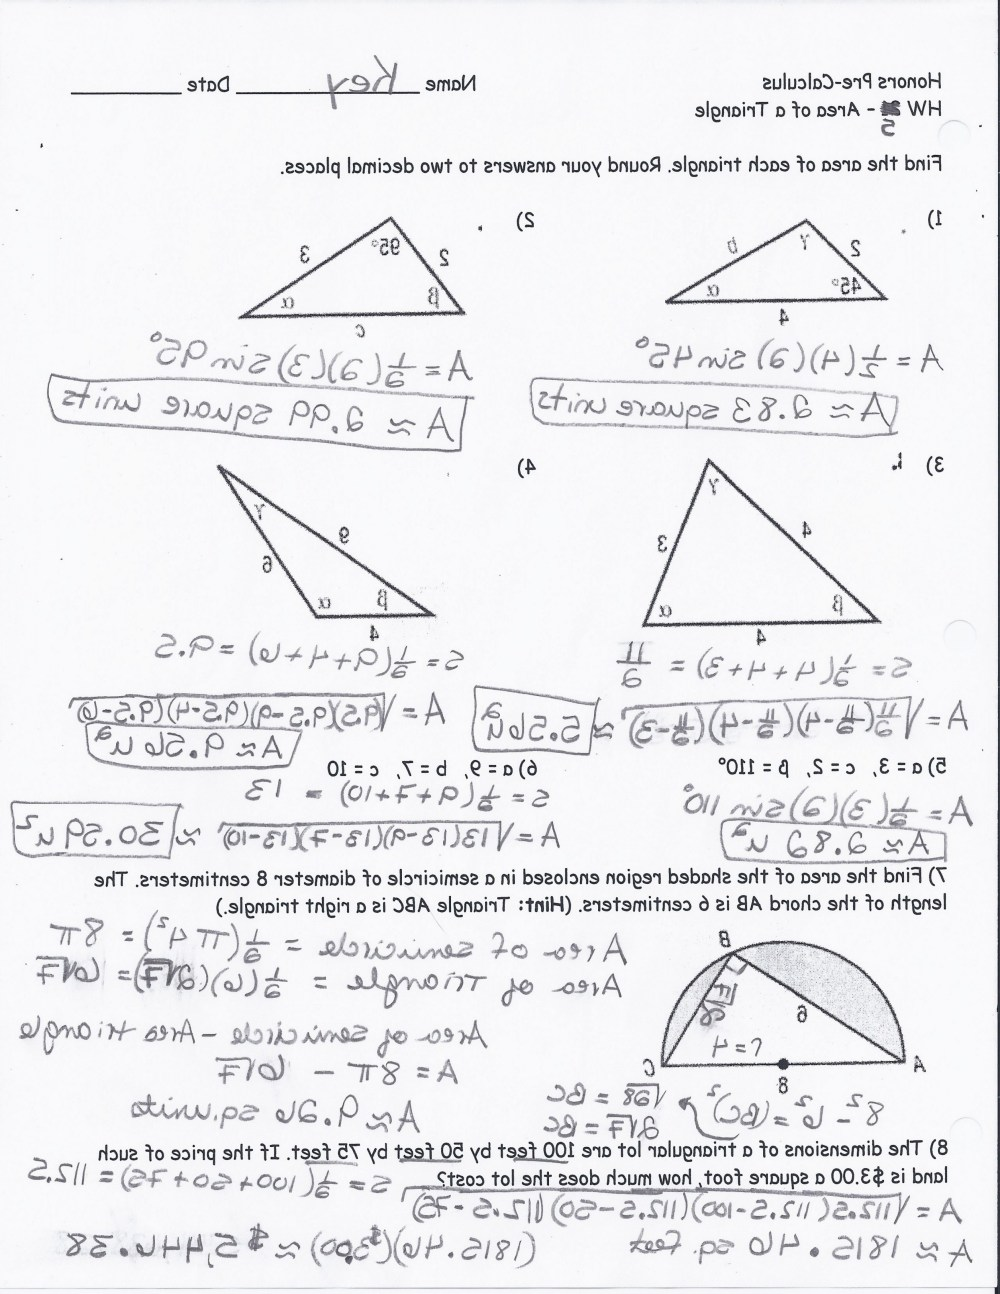 medium resolution of Finding Angles Worksheet   Printable Worksheets and Activities for  Teachers